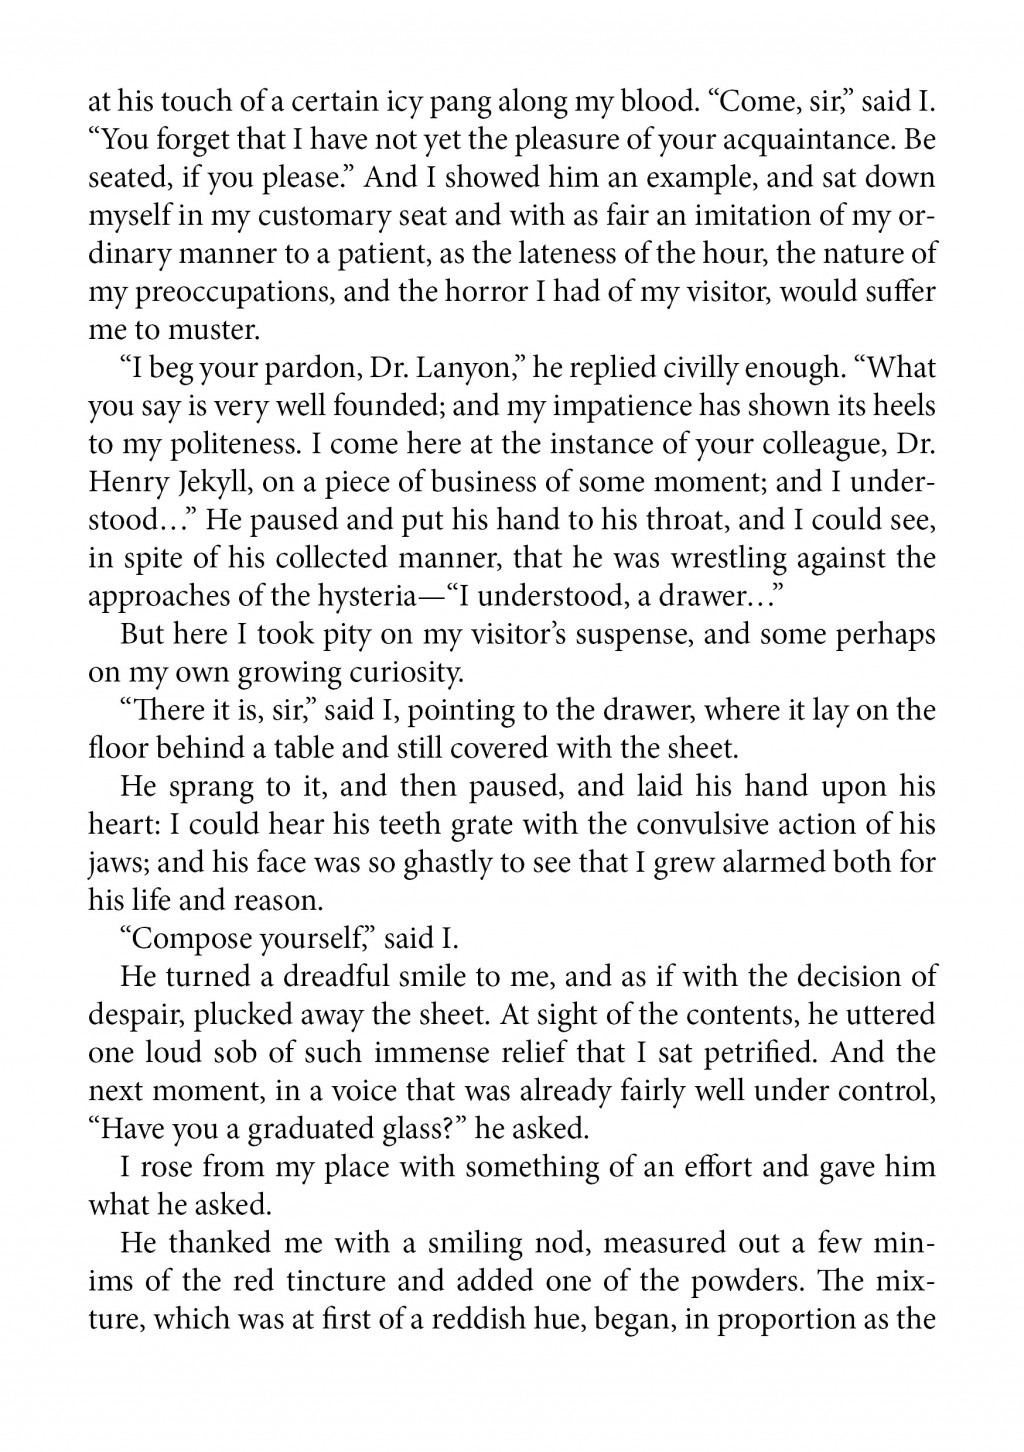 013 Dr  Jekyll And Mr Hyde Text One Paragraph Essay Awesome About Dwarfism TopicsLarge